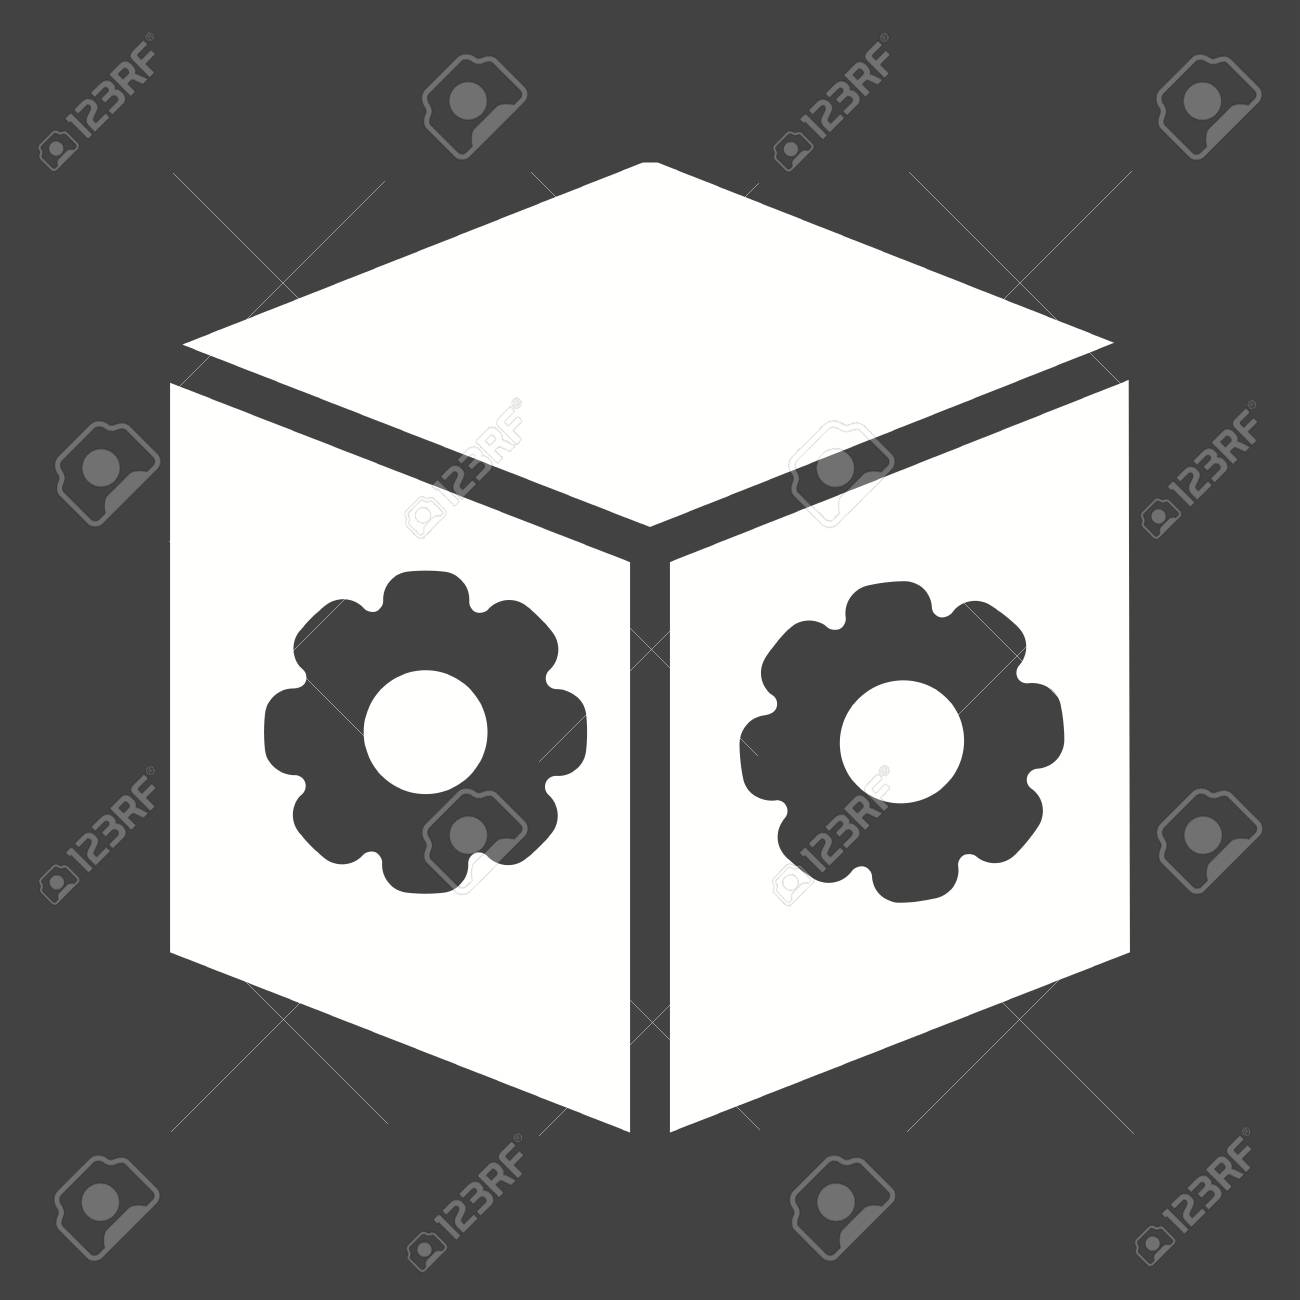 Dropbox business growth icon vector image royalty free cliparts dropbox business growth icon vector image stock vector 52950480 biocorpaavc Gallery